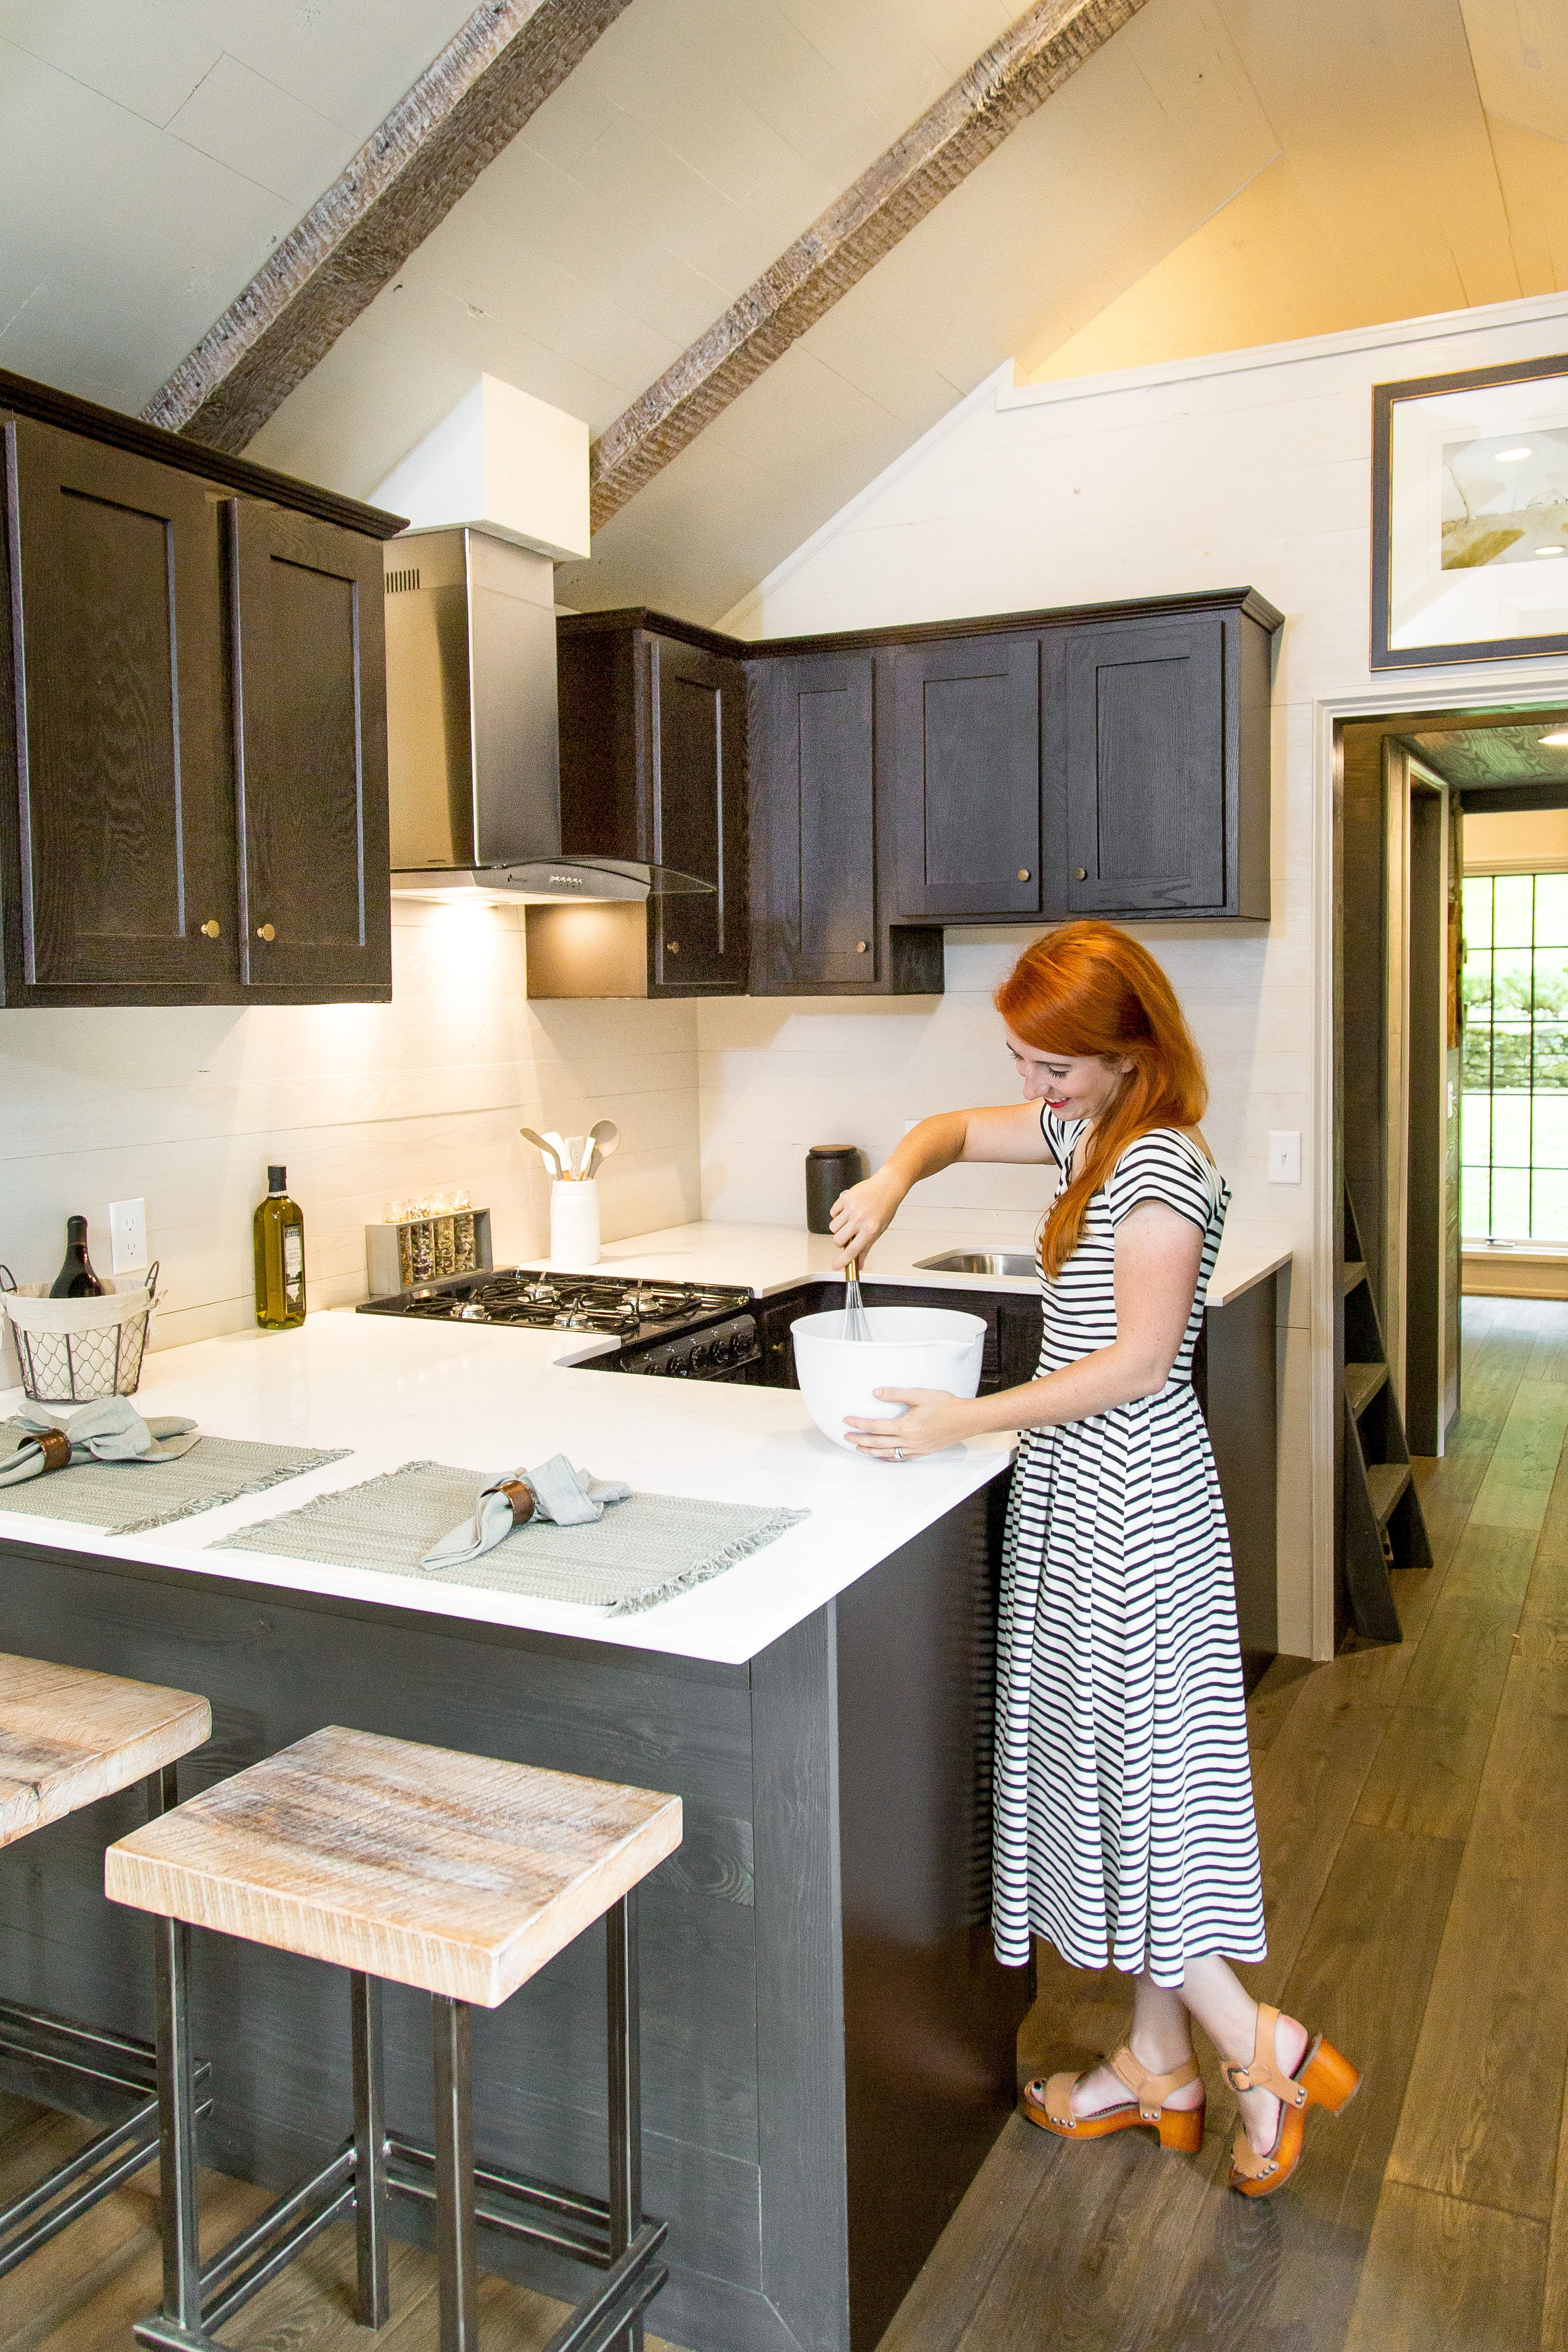 15 Things You Dont Expect Living In A Tiny Home